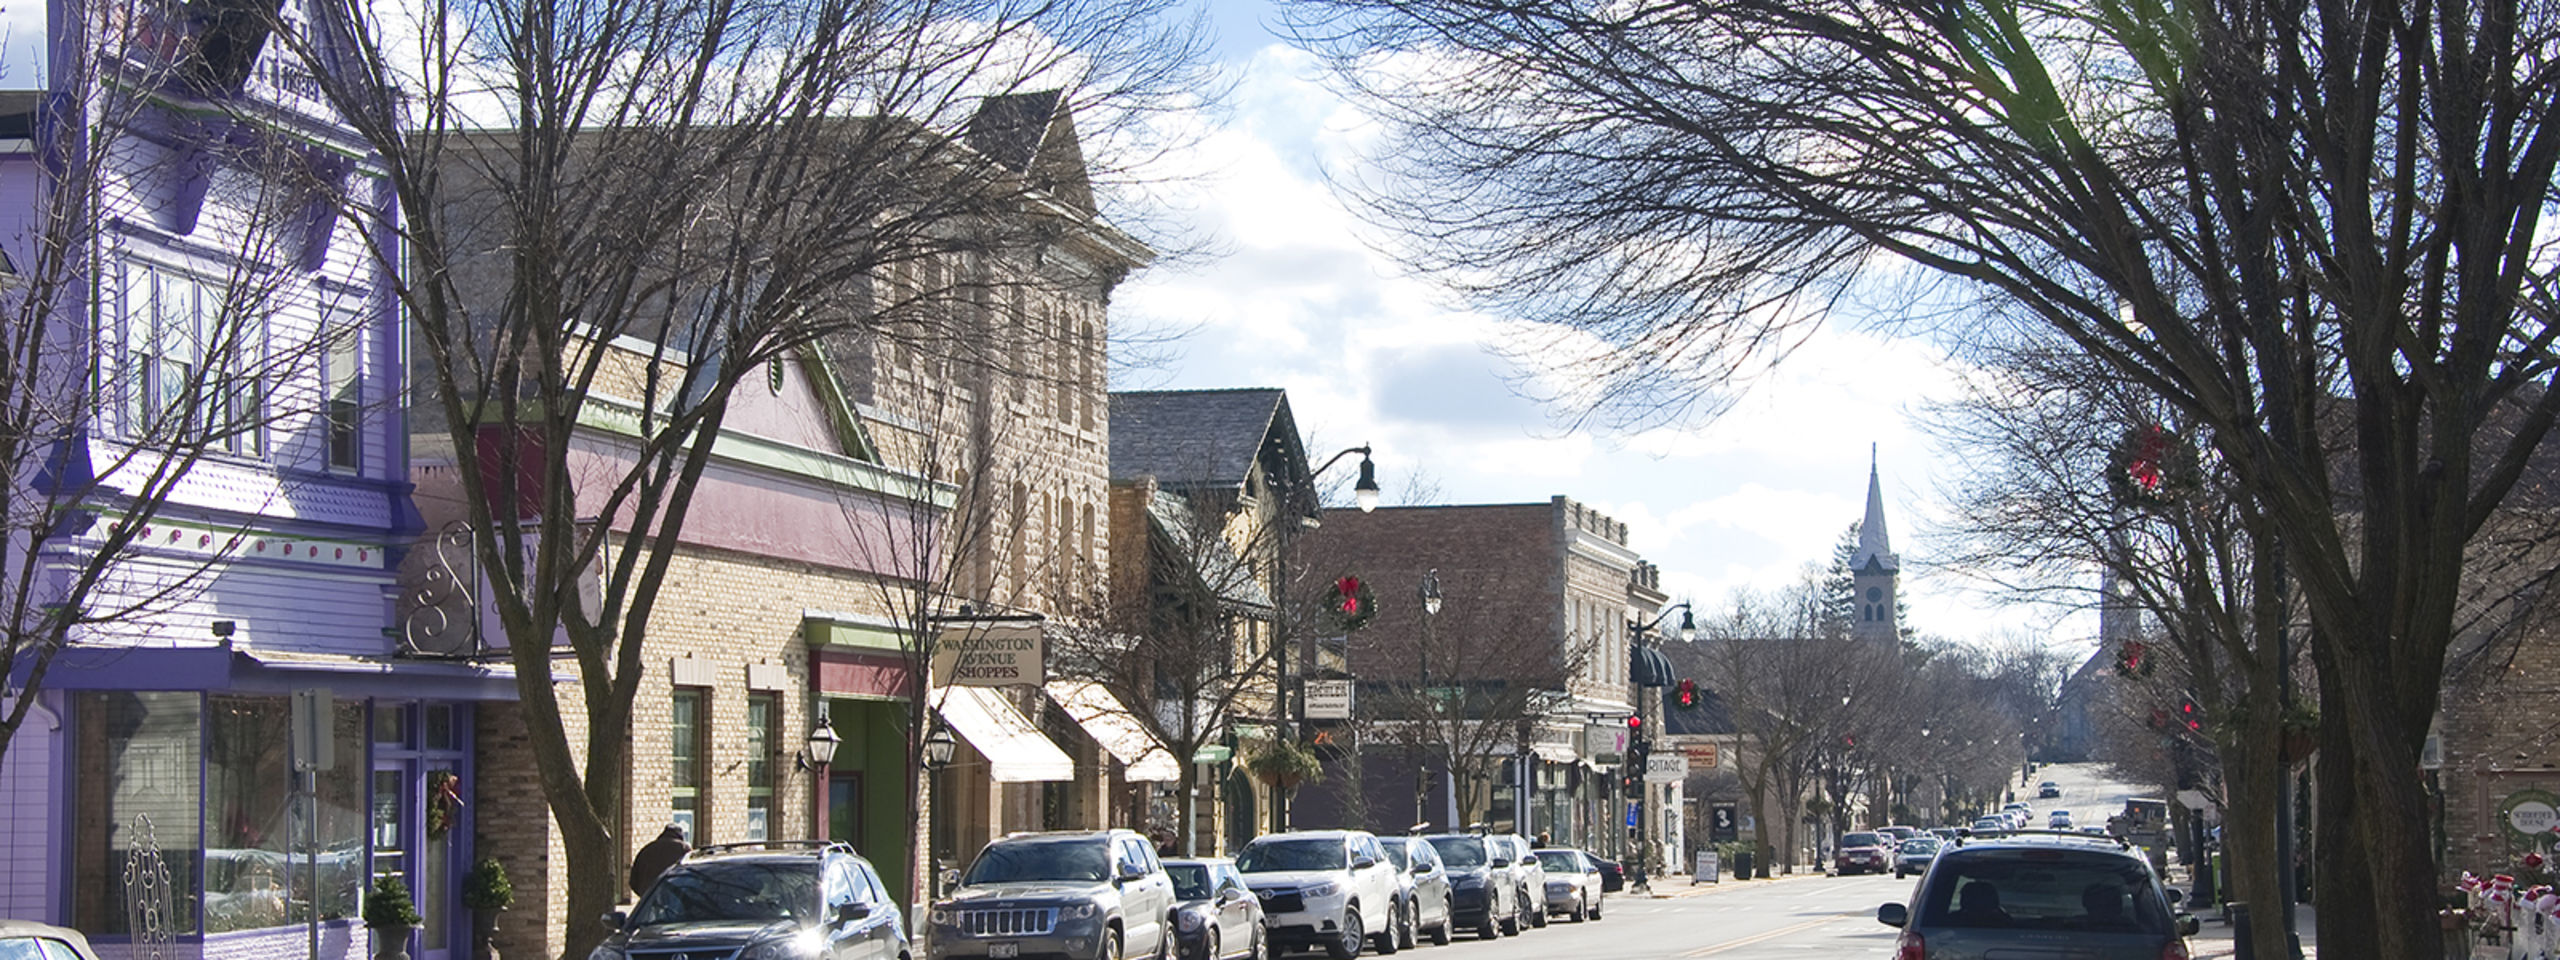 Historic and Vibrant Downtowns